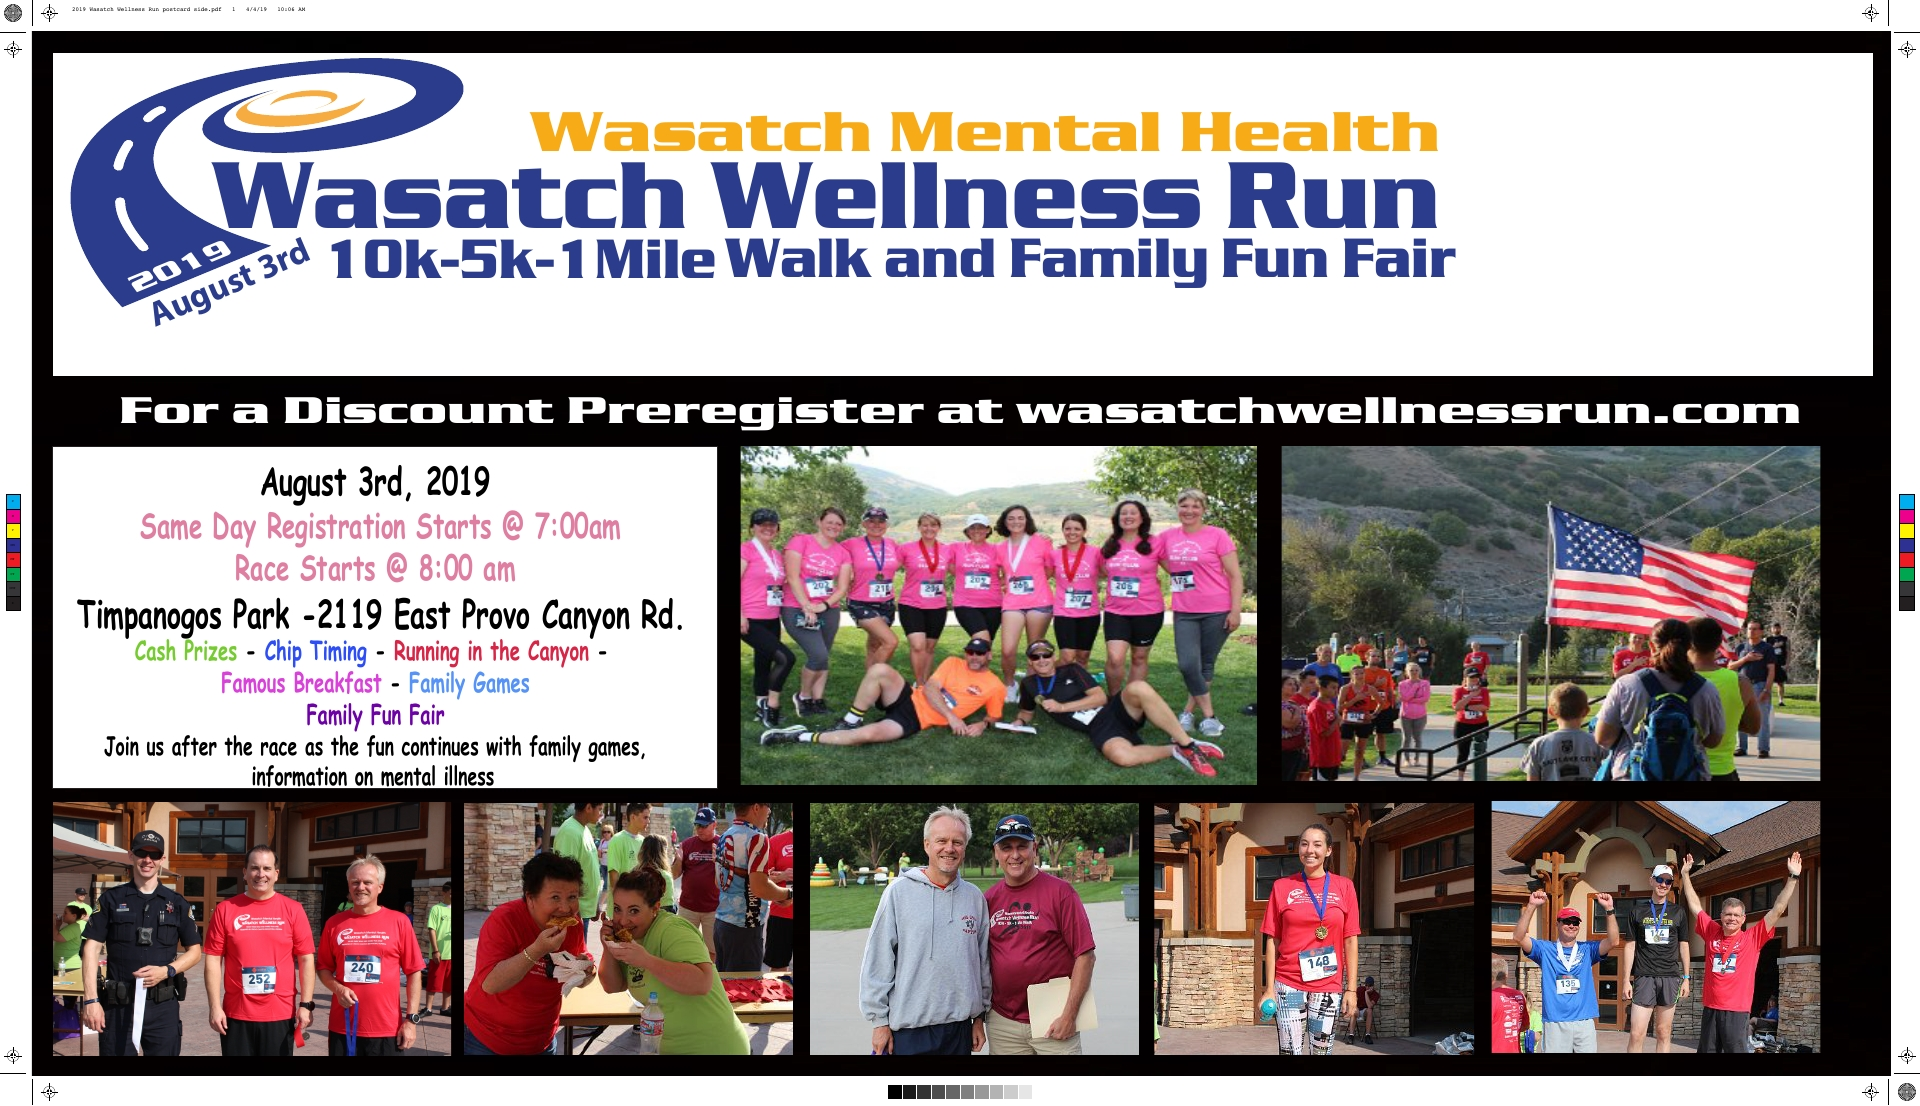 Wasatch Wellness Run flyer, p 1, Provo